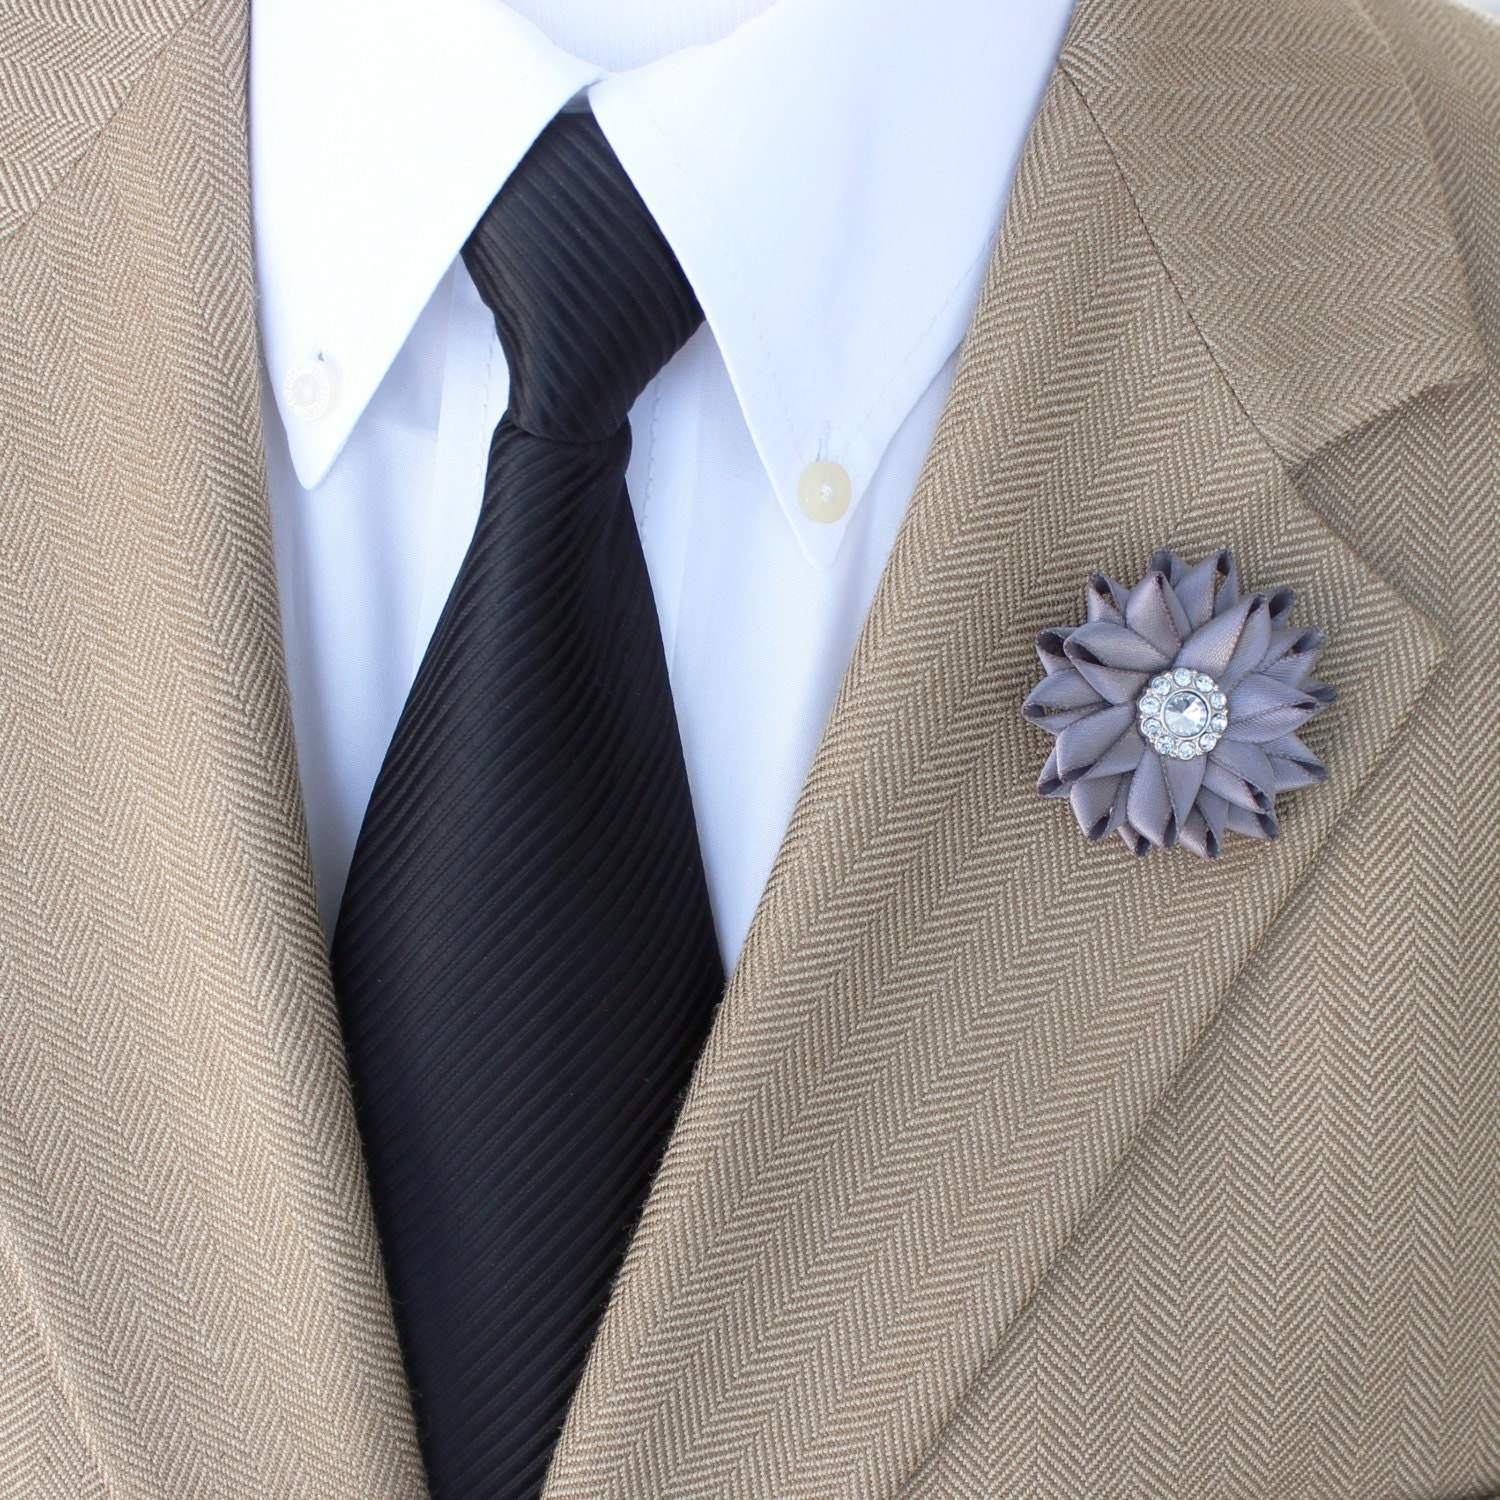 Mens Gifts Lapel Flower Custom Lapel Pin Mens Fashion Accessories Gift fo